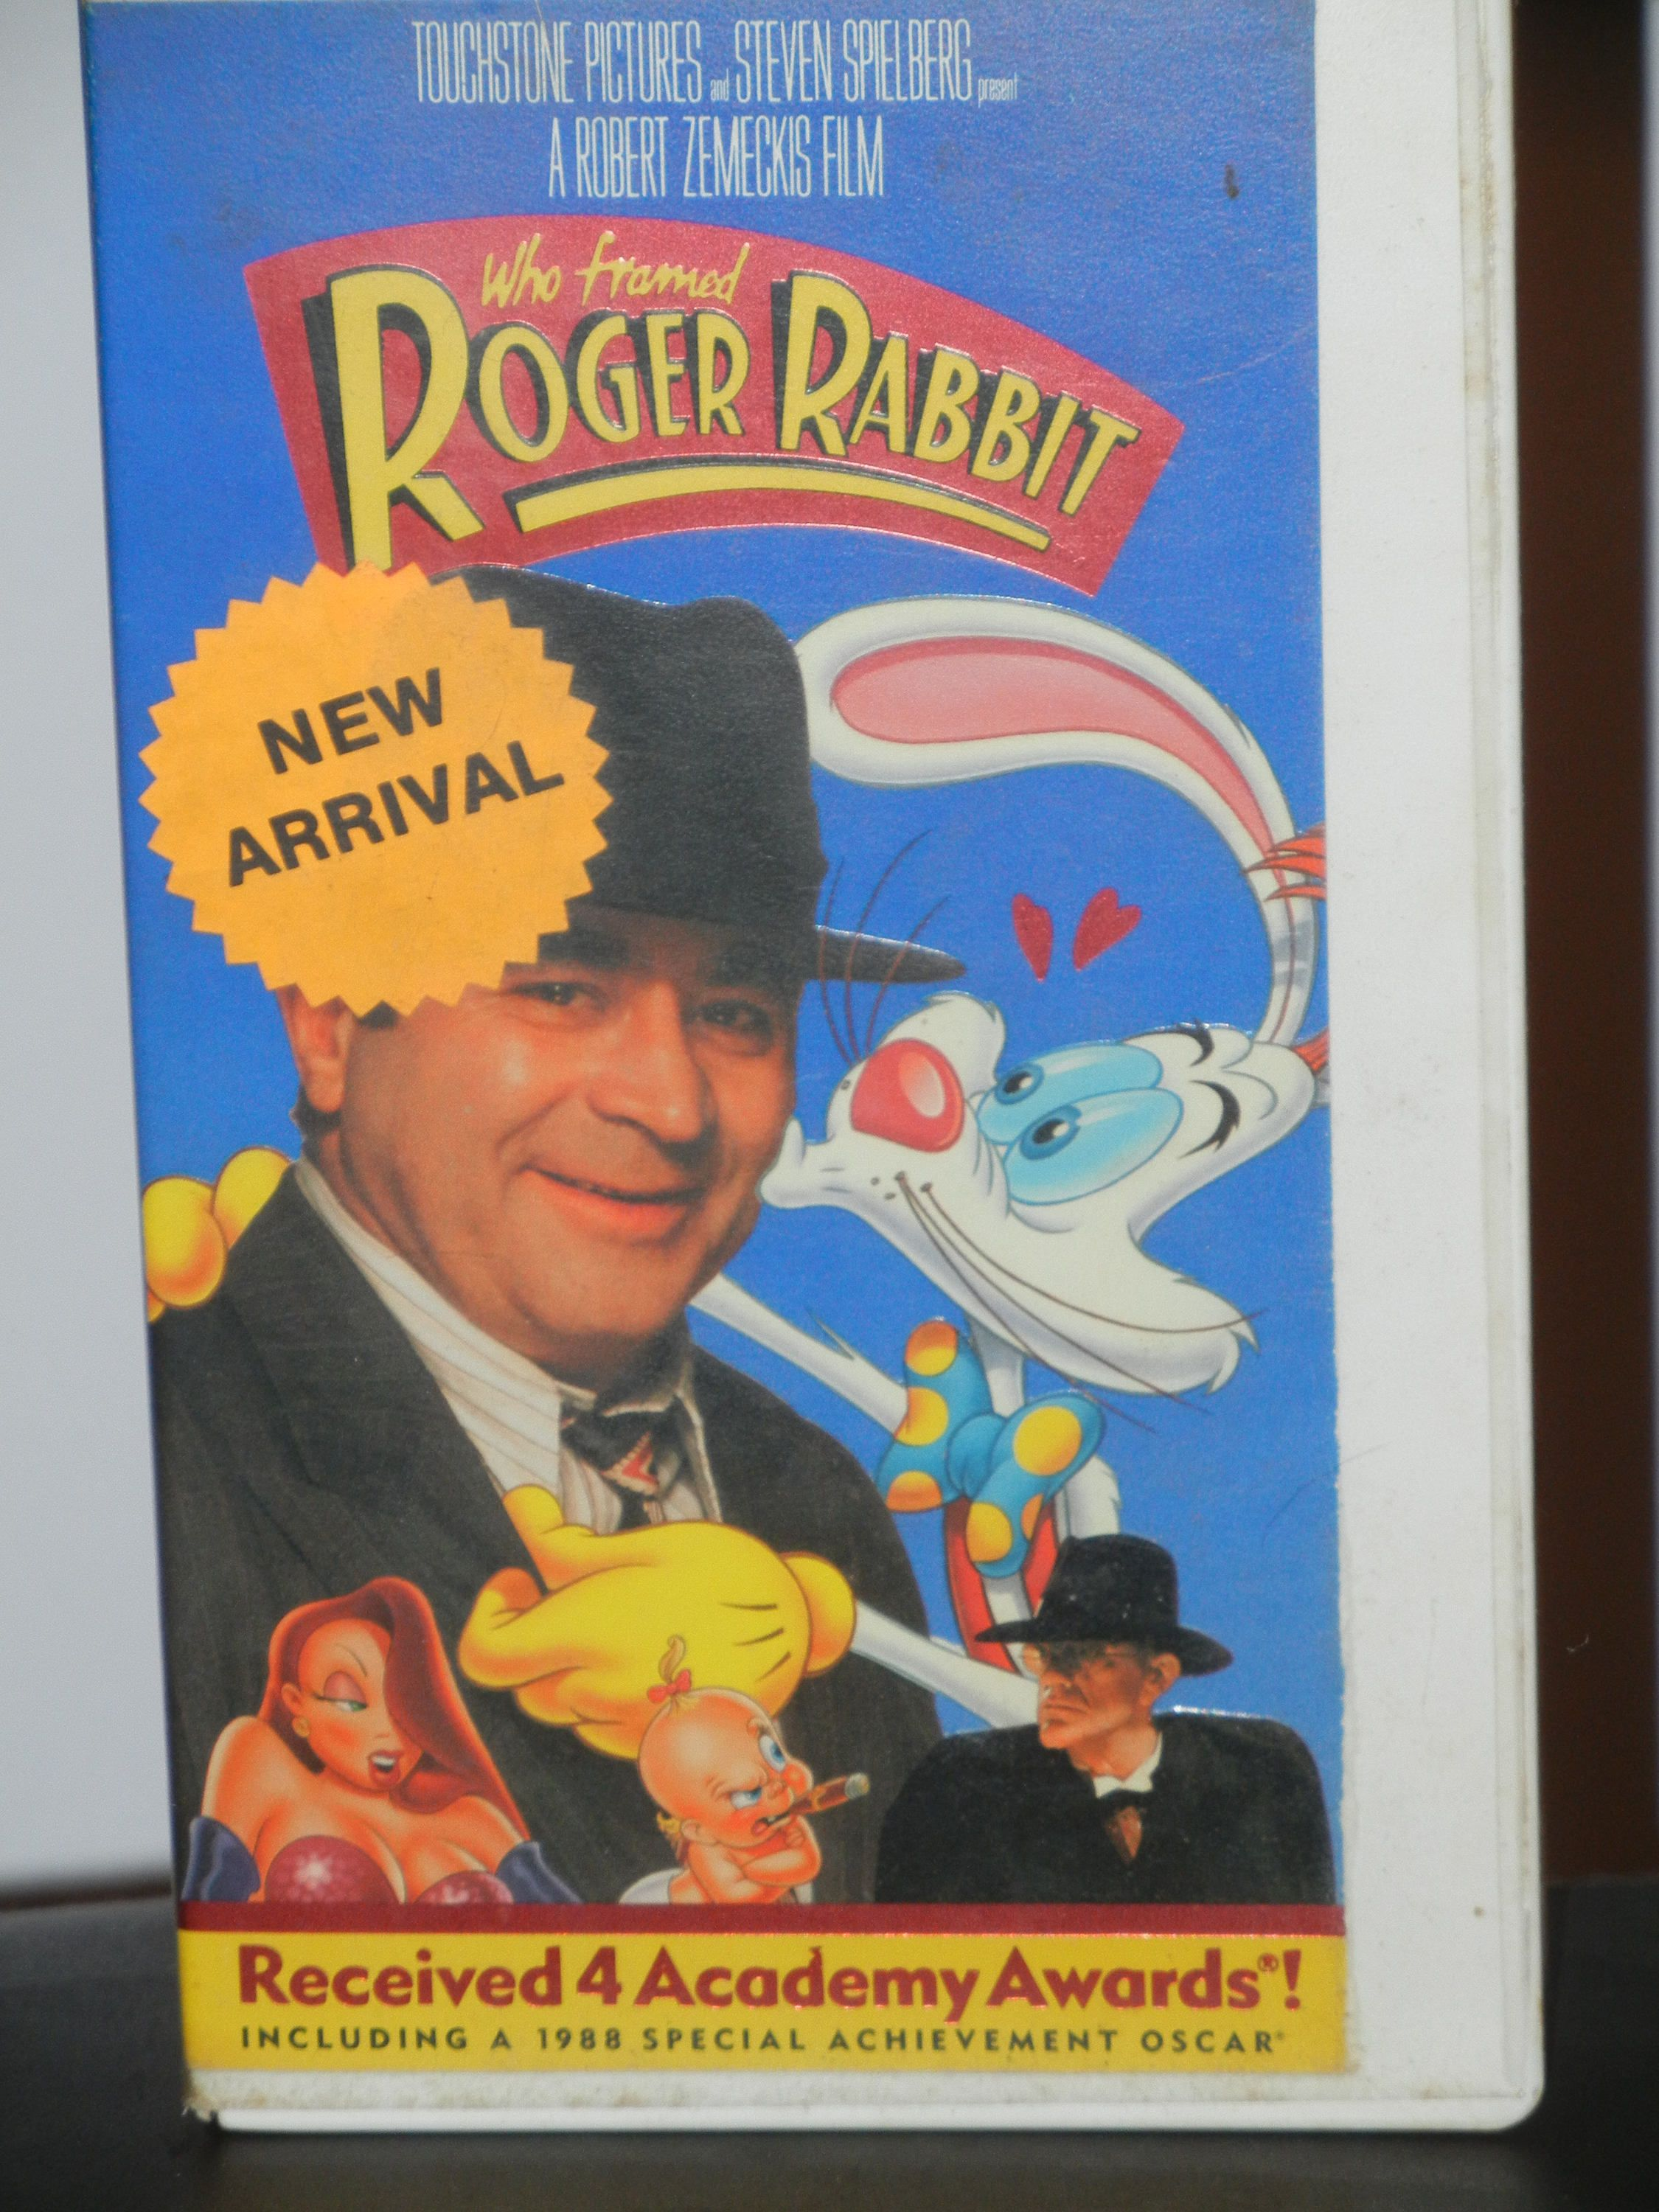 Who Framed Roger Rabbit Vhs Uk | Frameswalls.org